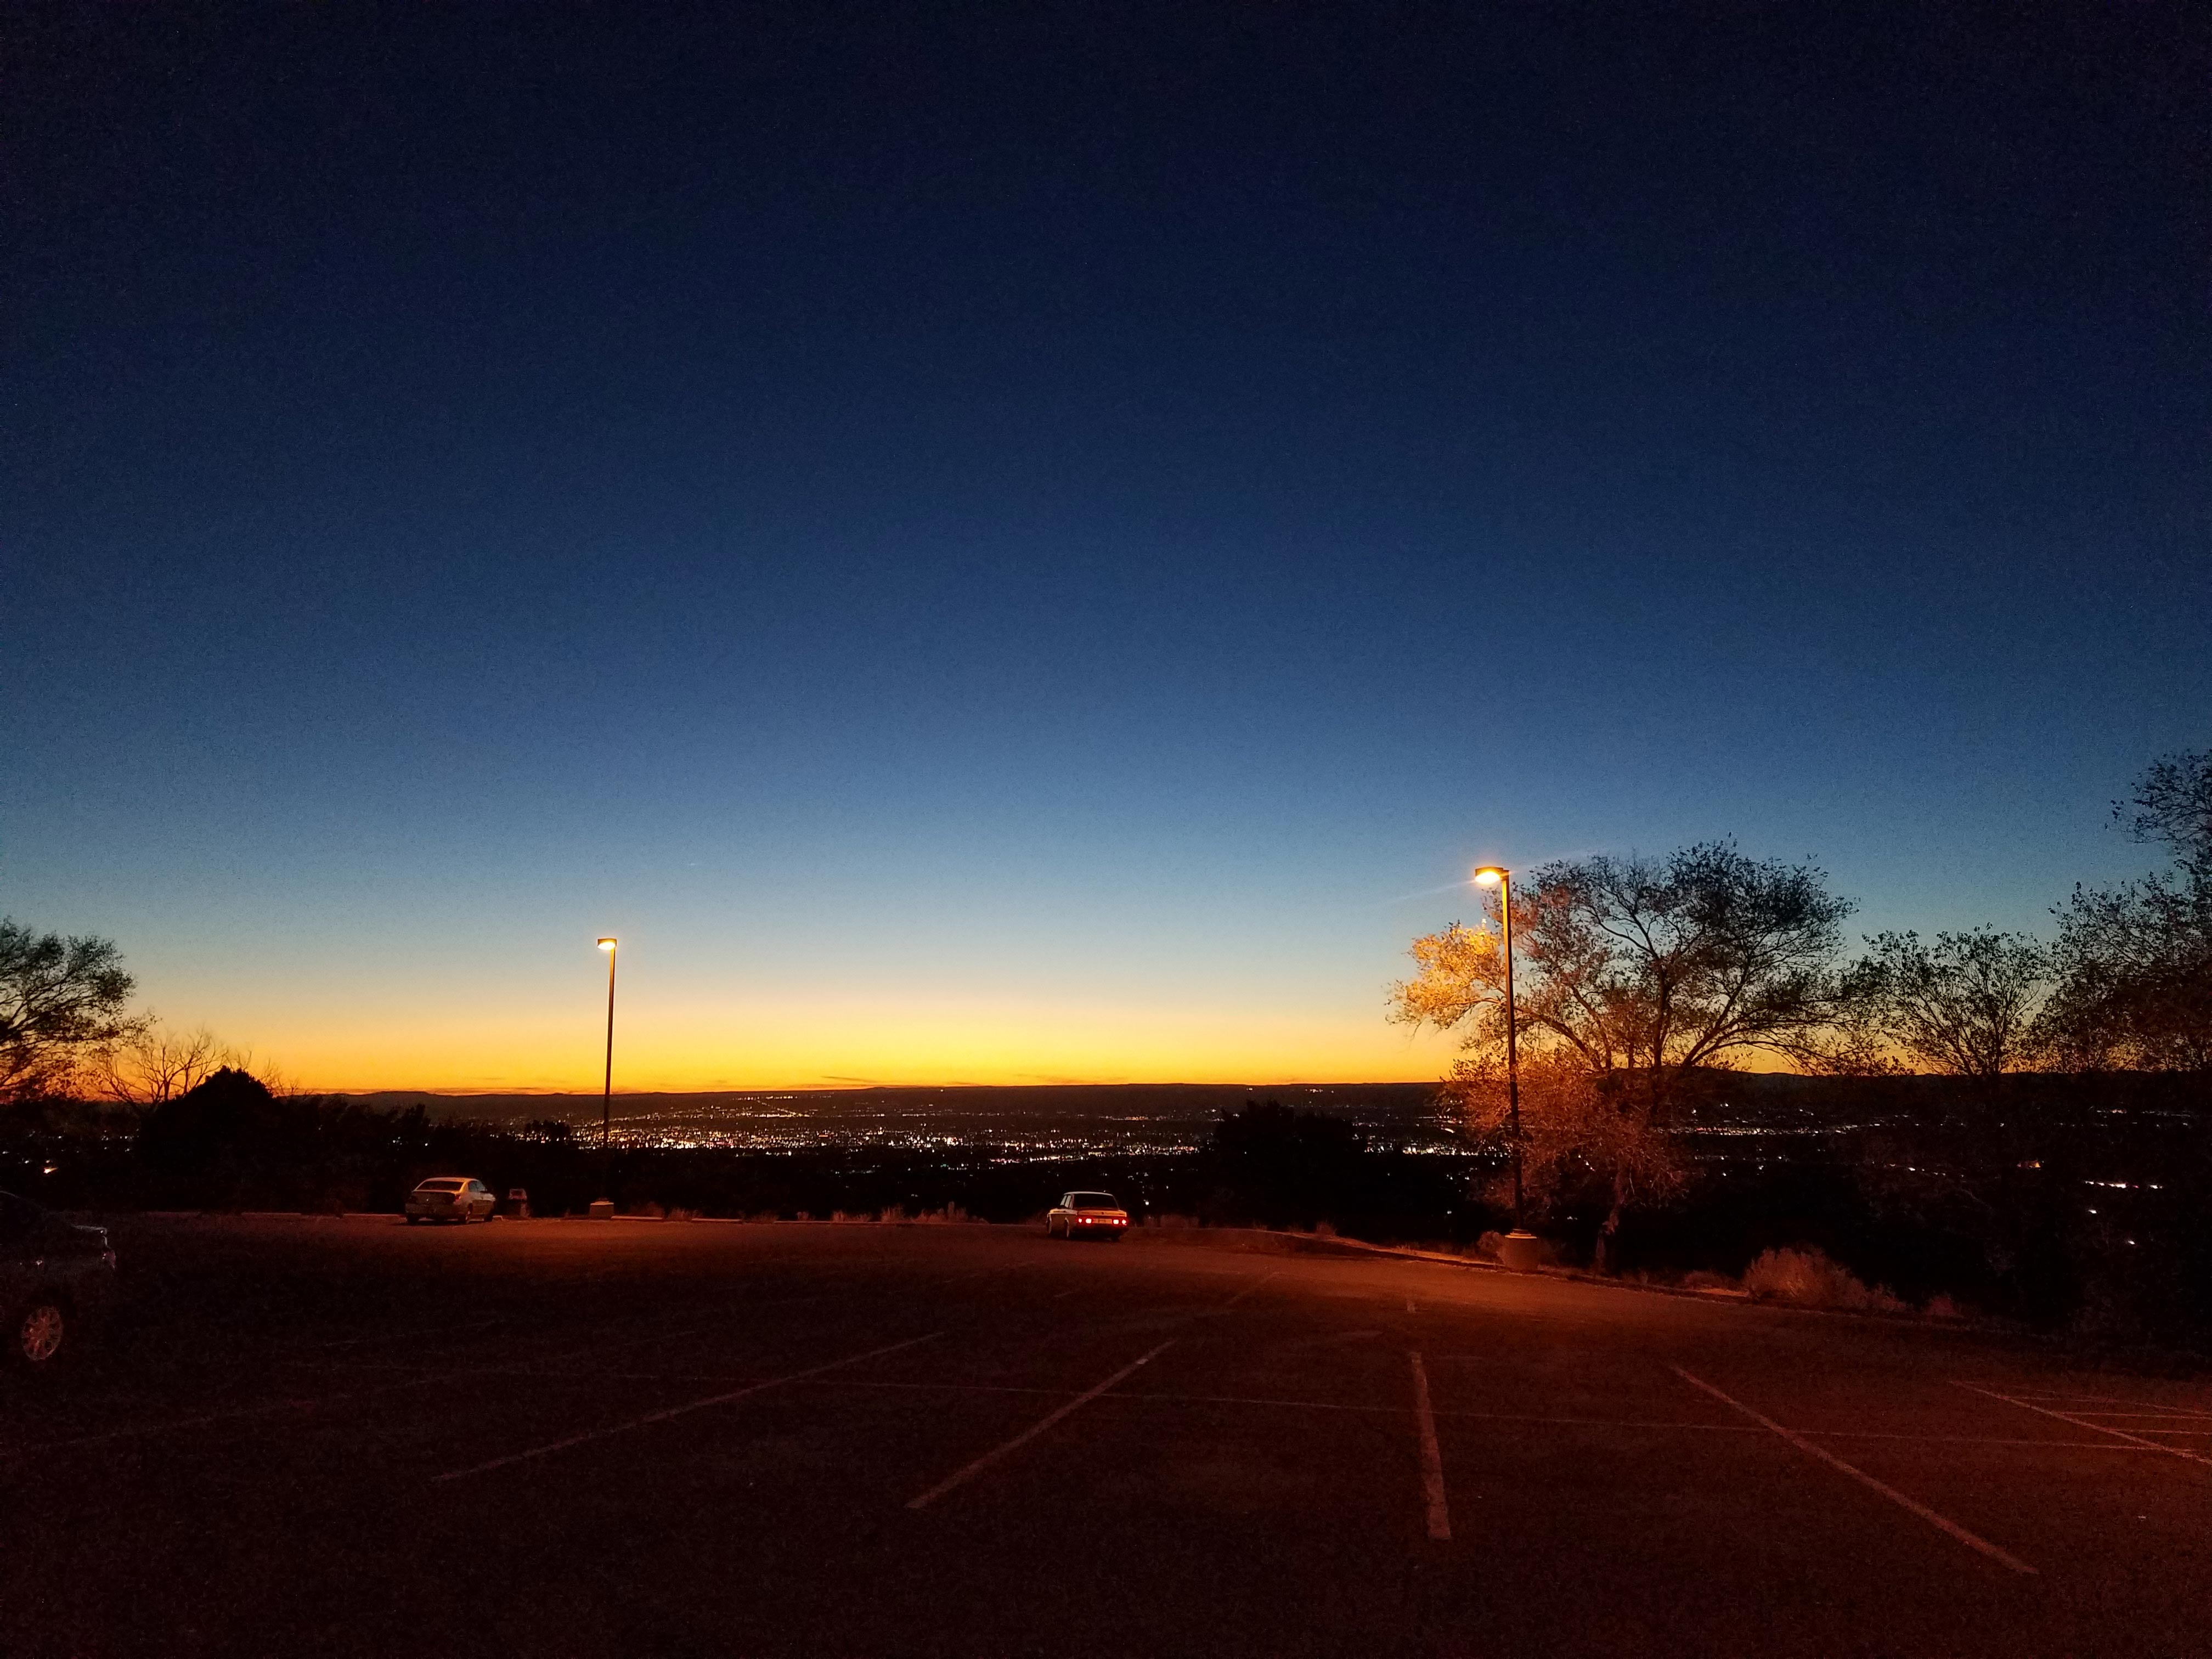 A nearly empty parking lot, overlooking the lights of a city in the distance. The sun has just set, so the sky fades from dark blue to yellow on the horizon. Two cars sit apart from each other near the edge of the lot.